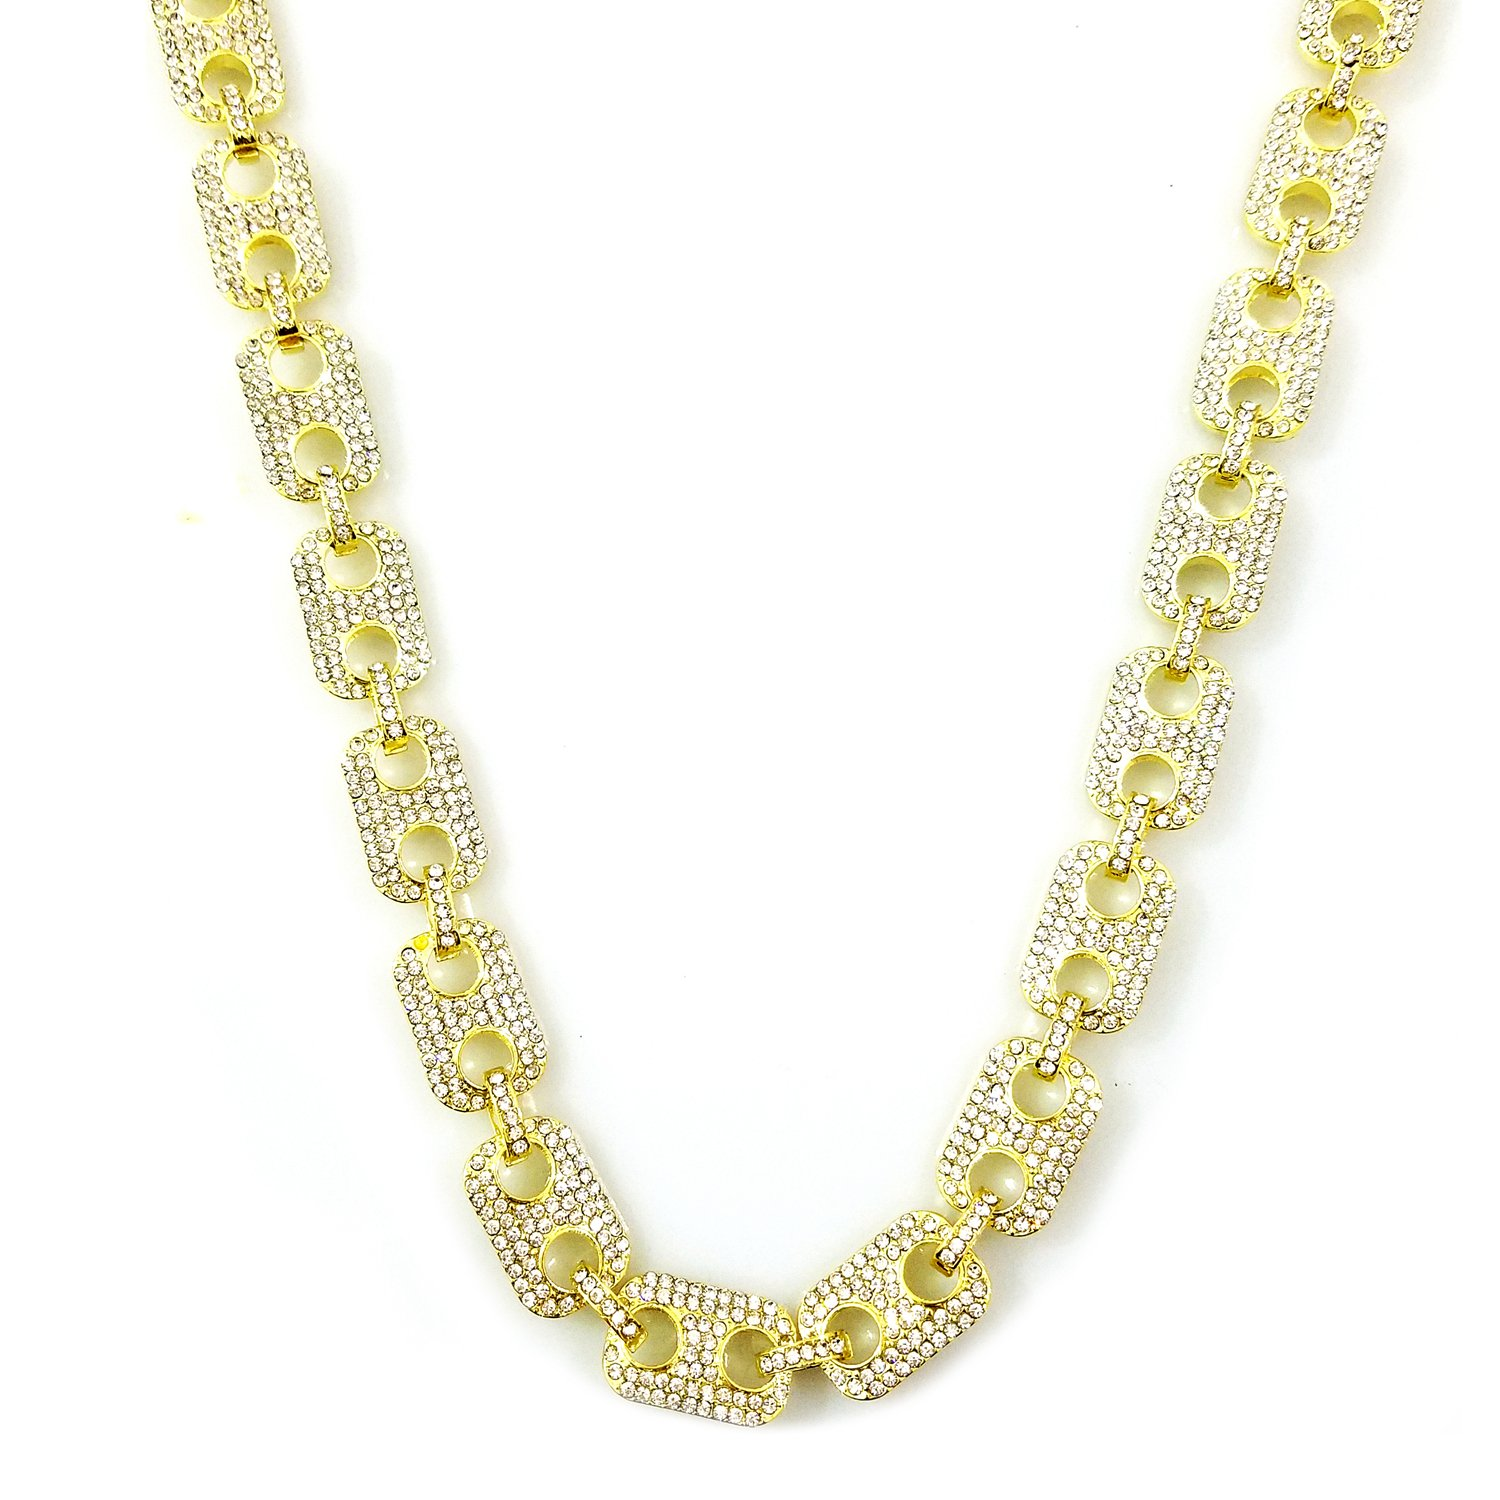 HH Bling Empire Mens Iced Out Hip Hop Silver Gold Faux Diamond Paved Puffed  Marine Linked Chain Necklace 24